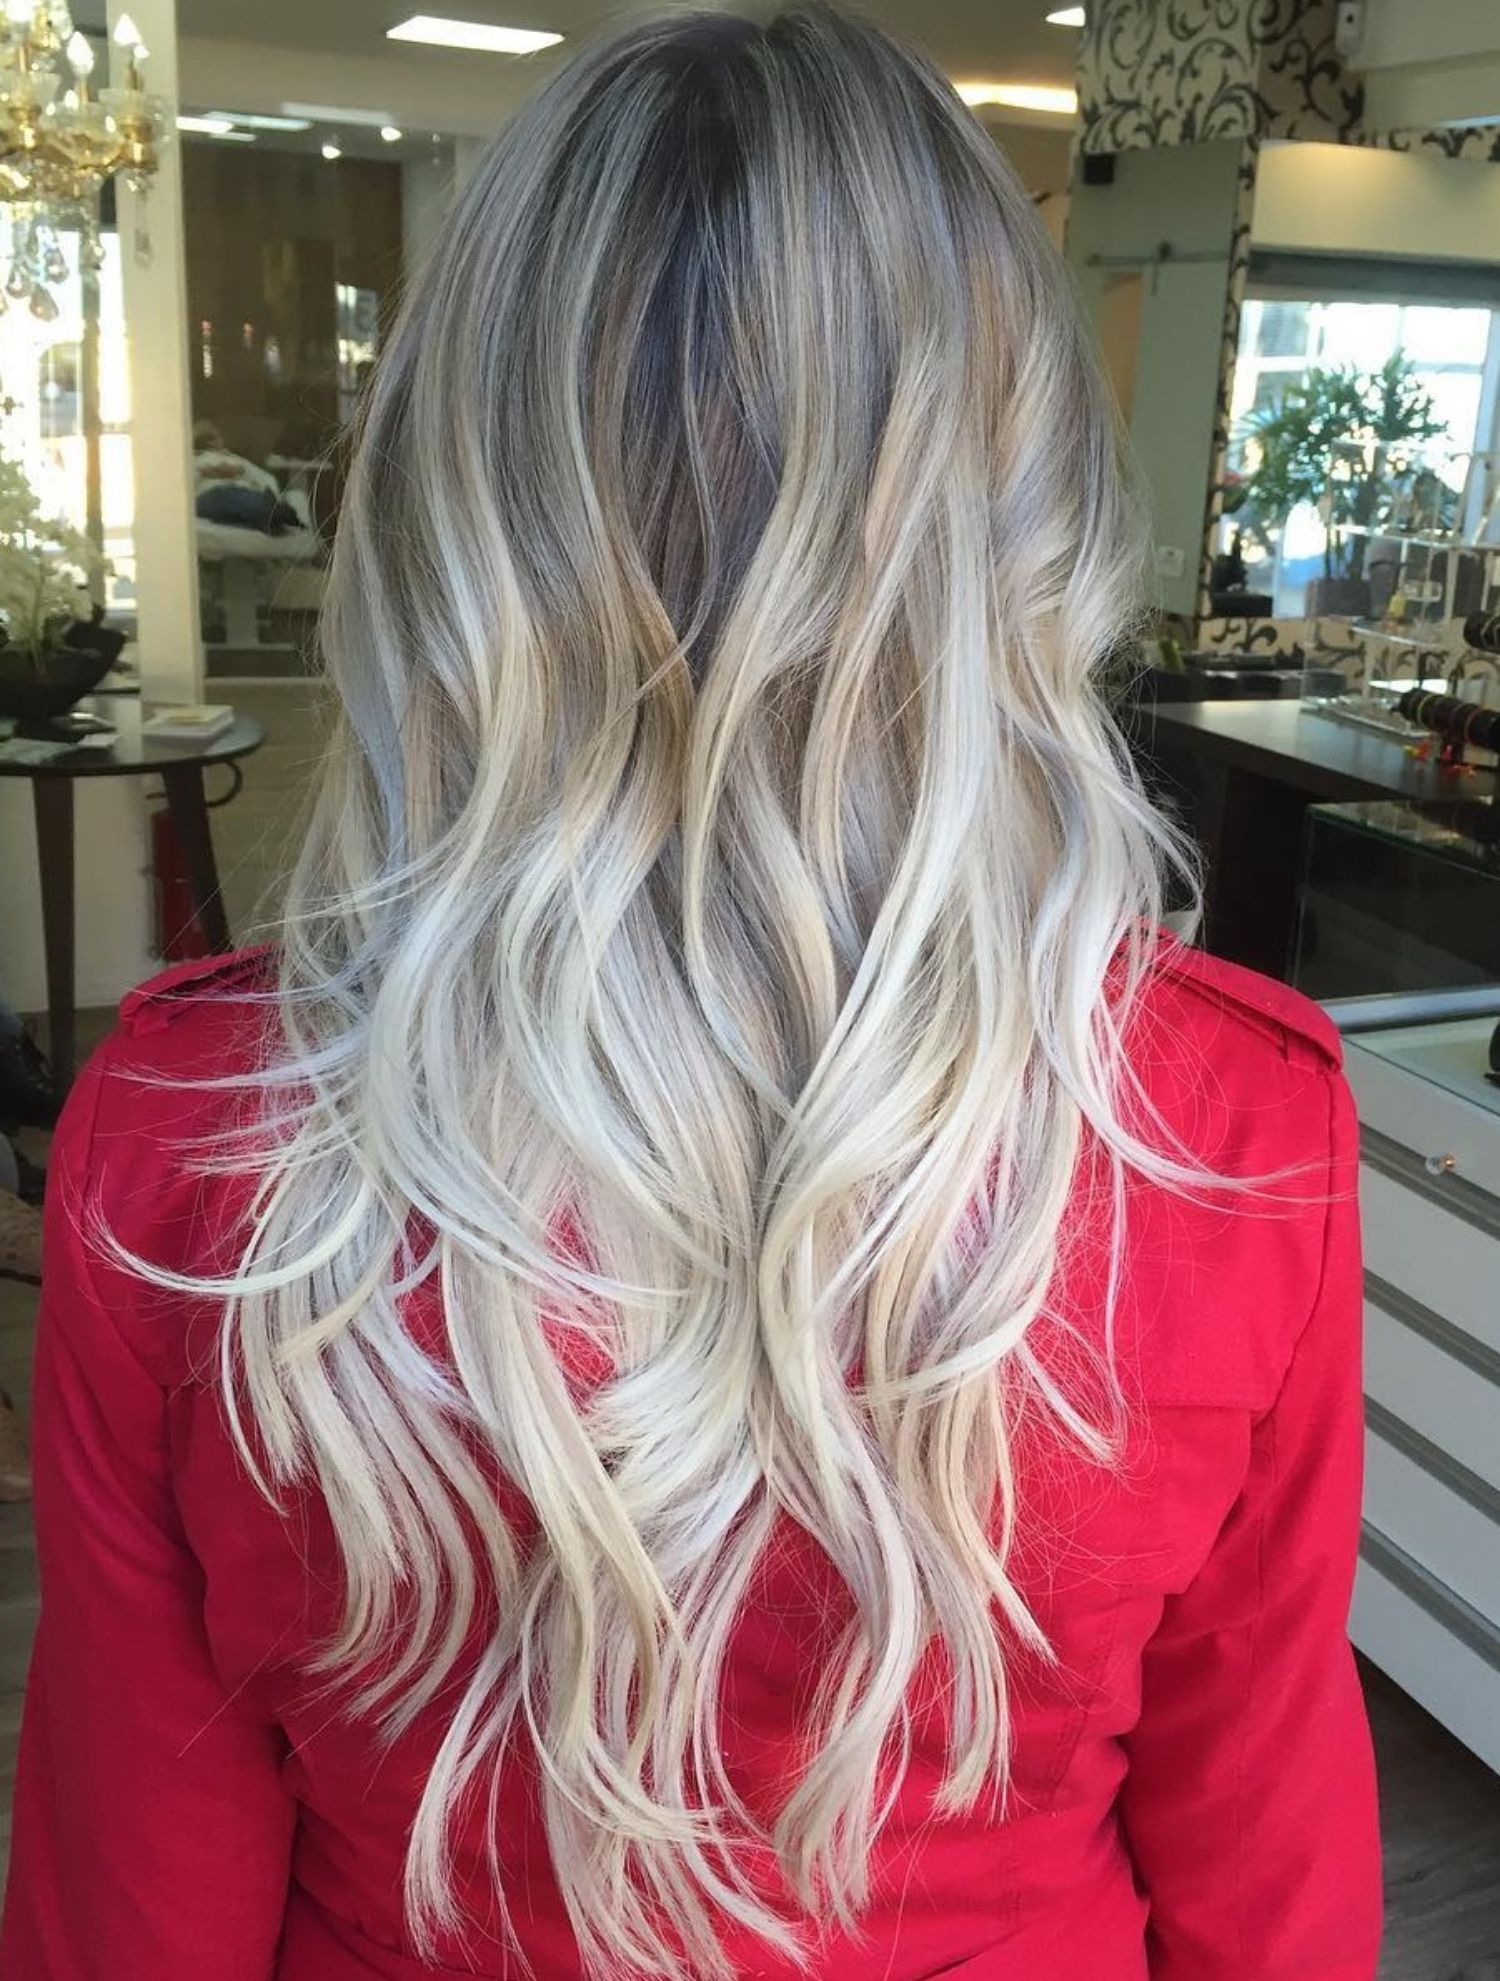 40 Picture Perfect Hairstyles For Long Thin Hair Long Thin Hair Hairstyles For Thin Hair Long Hair Styles